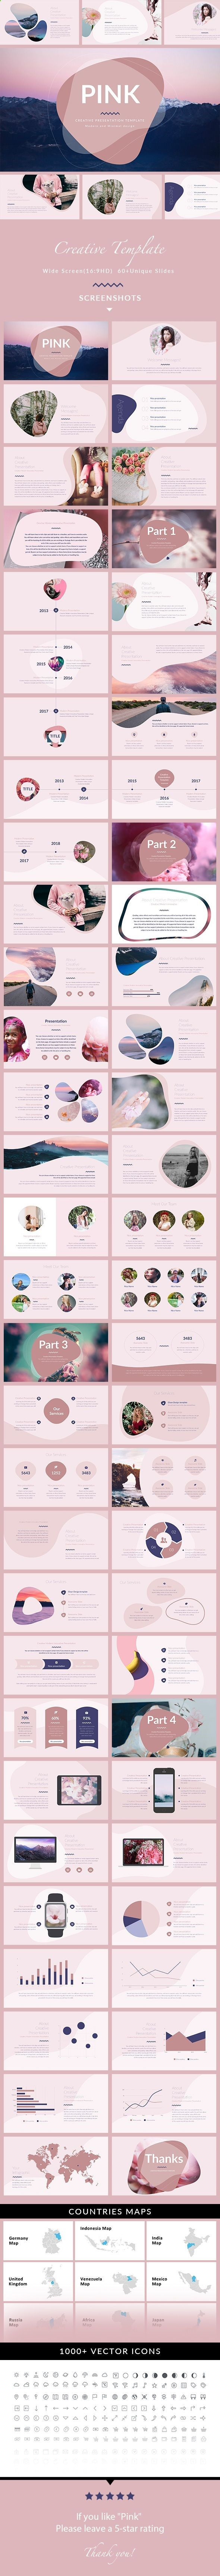 Pink minimal creative powerpoint template creative powerpoint pink minimal creative powerpoint template creative powerpoint templates download here graphicriver toneelgroepblik Choice Image